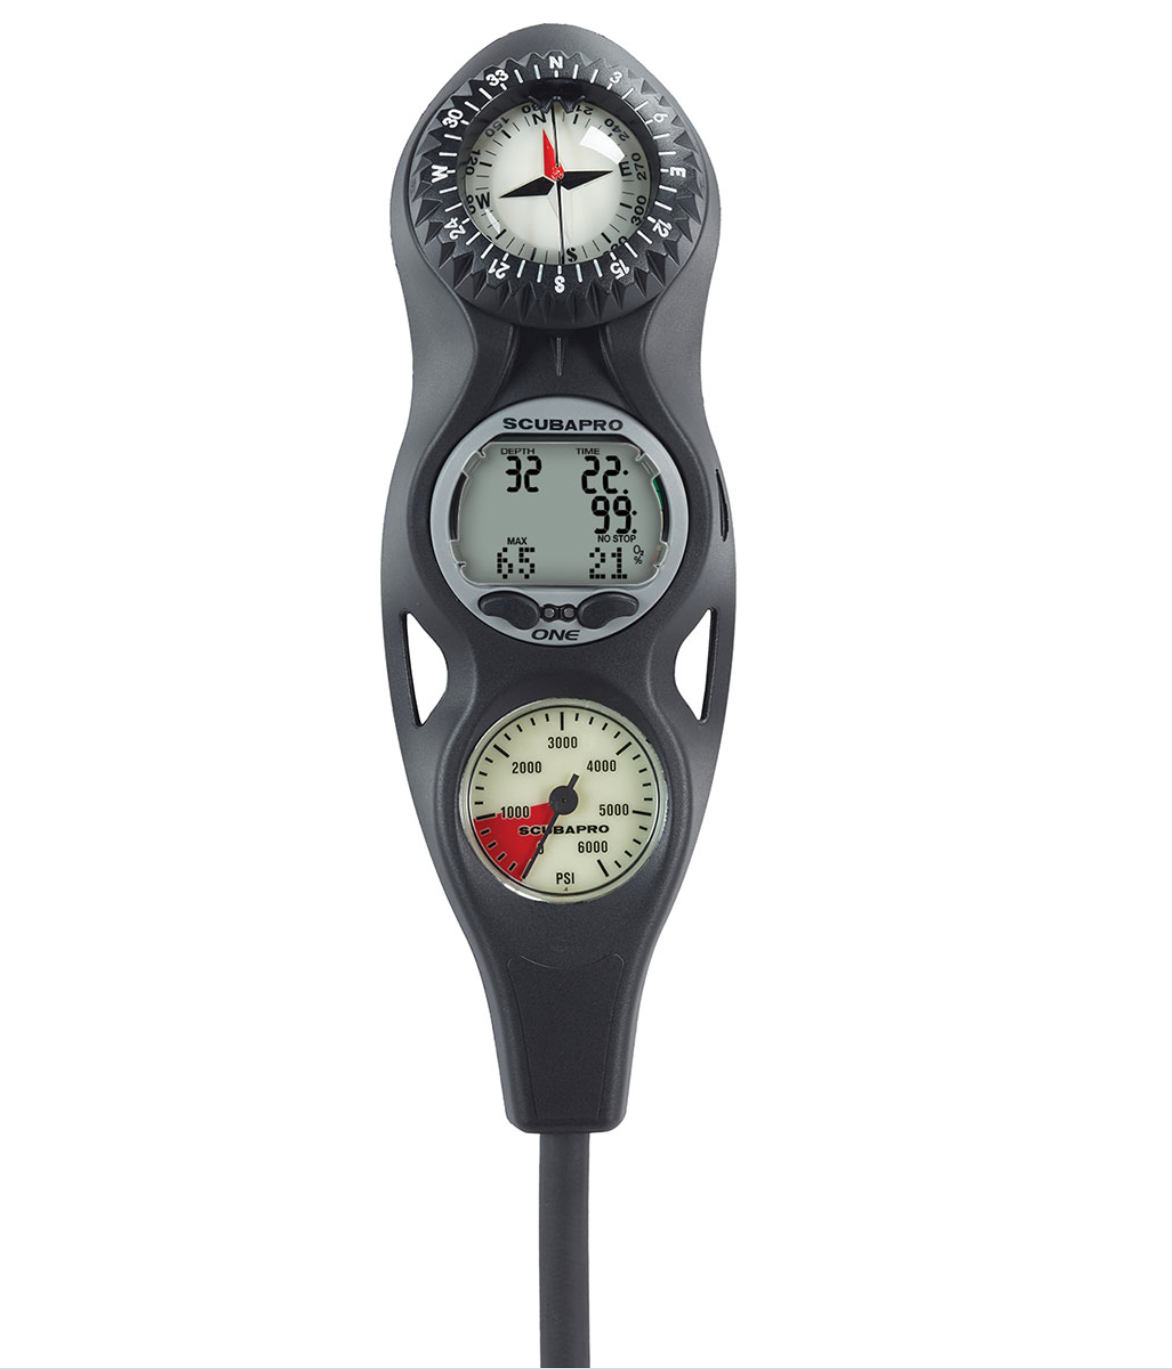 Aladin ONE Matrix 3-G In-Line Console: PSI/PG, FS-1.5 Compass